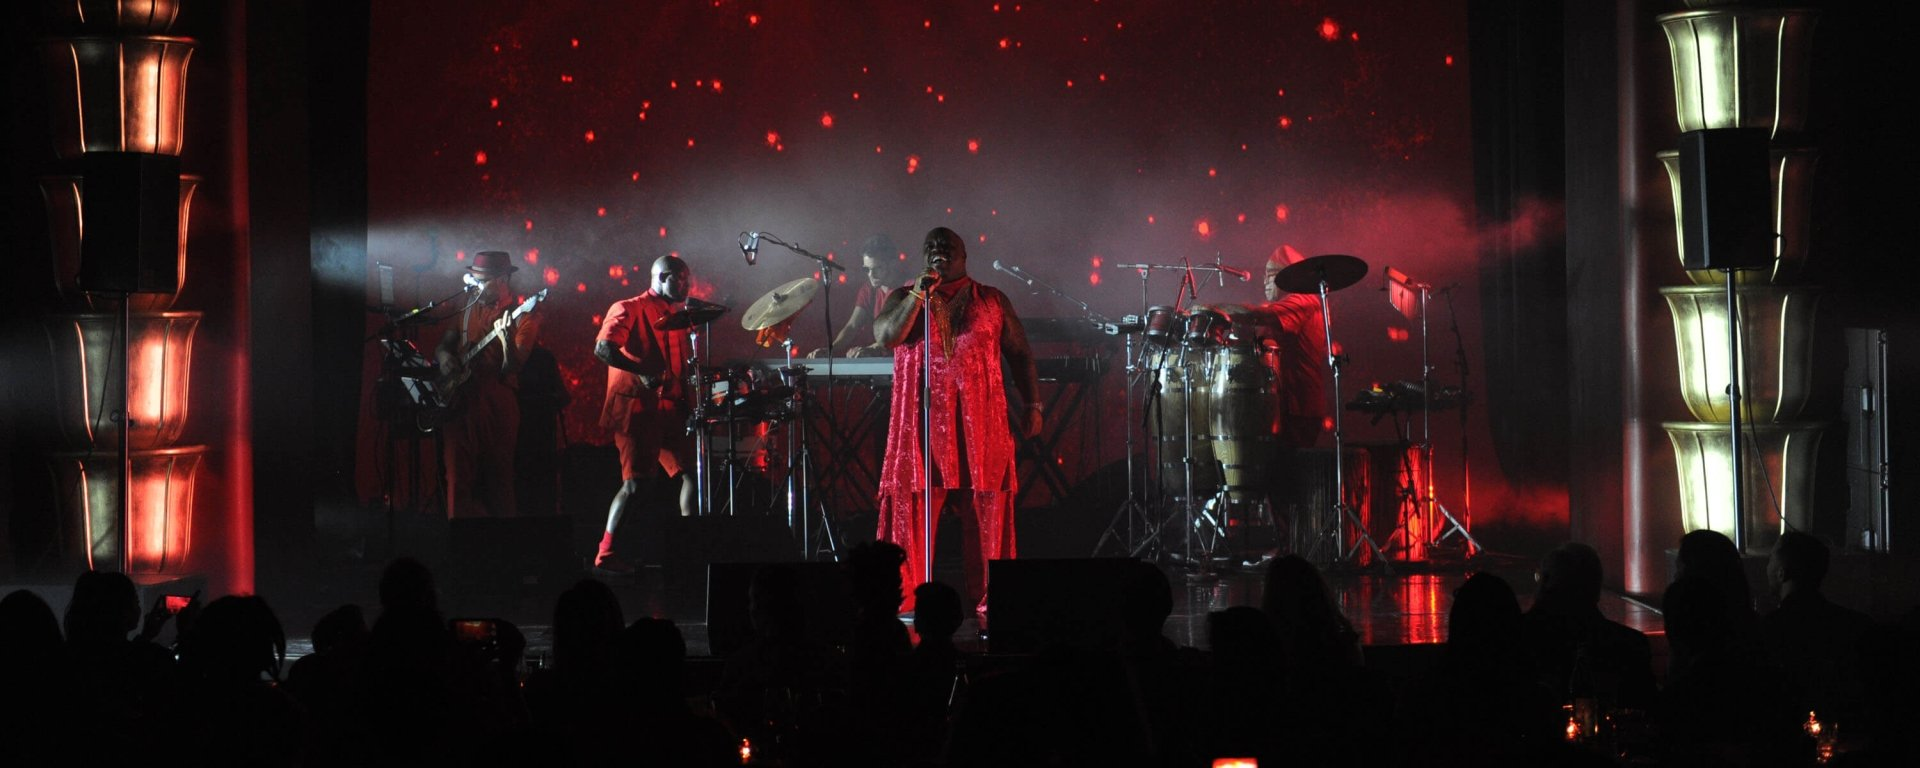 CeeLo Green performing at Faena Theater